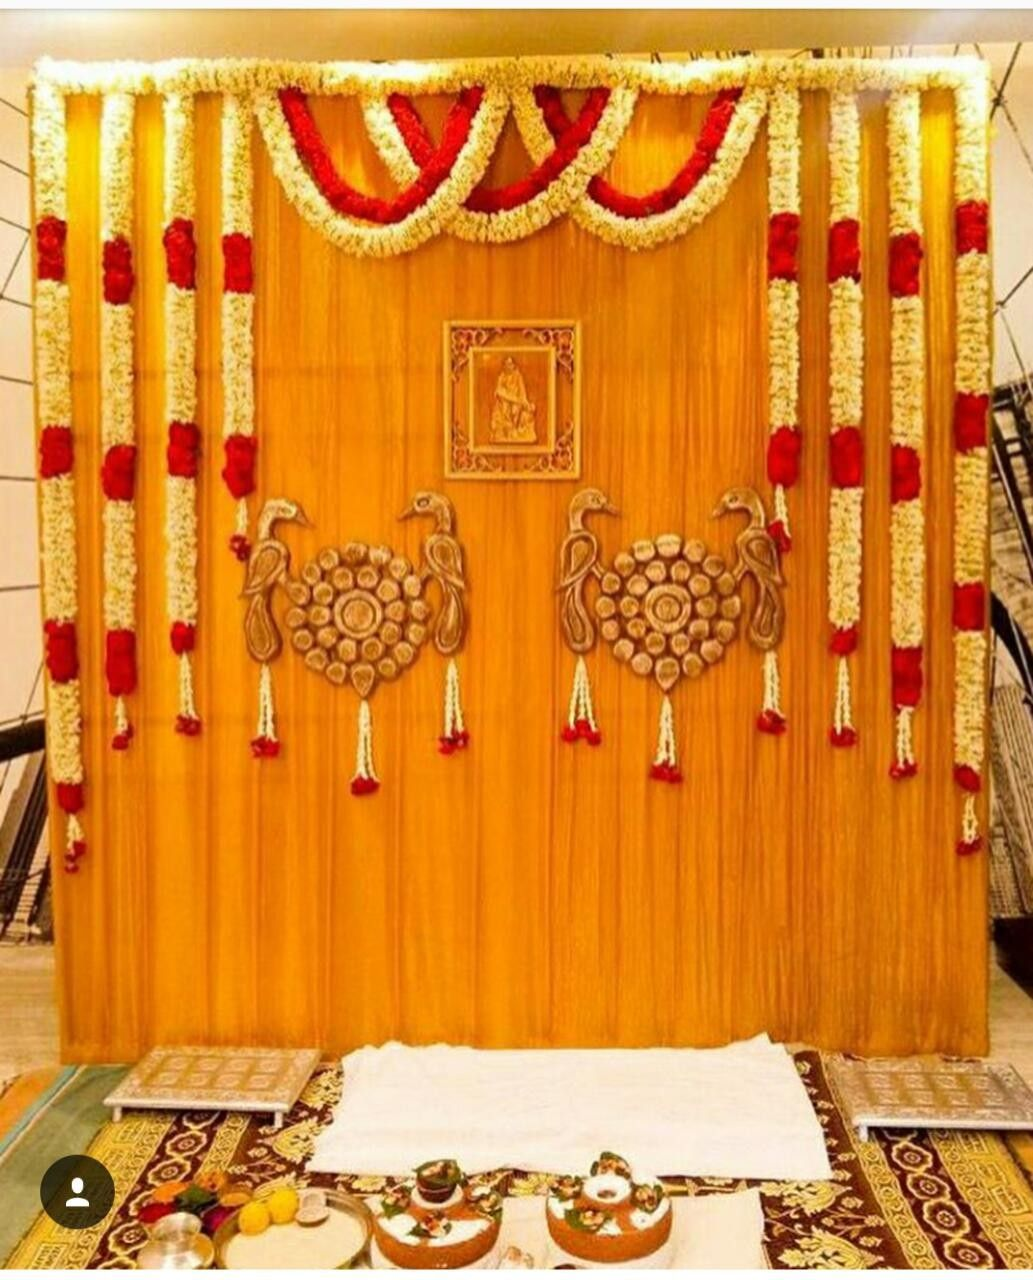 Wedding decorations traditional october 2018 Saved by radha reddy garisa  Drapes in   Pinterest  Wedding